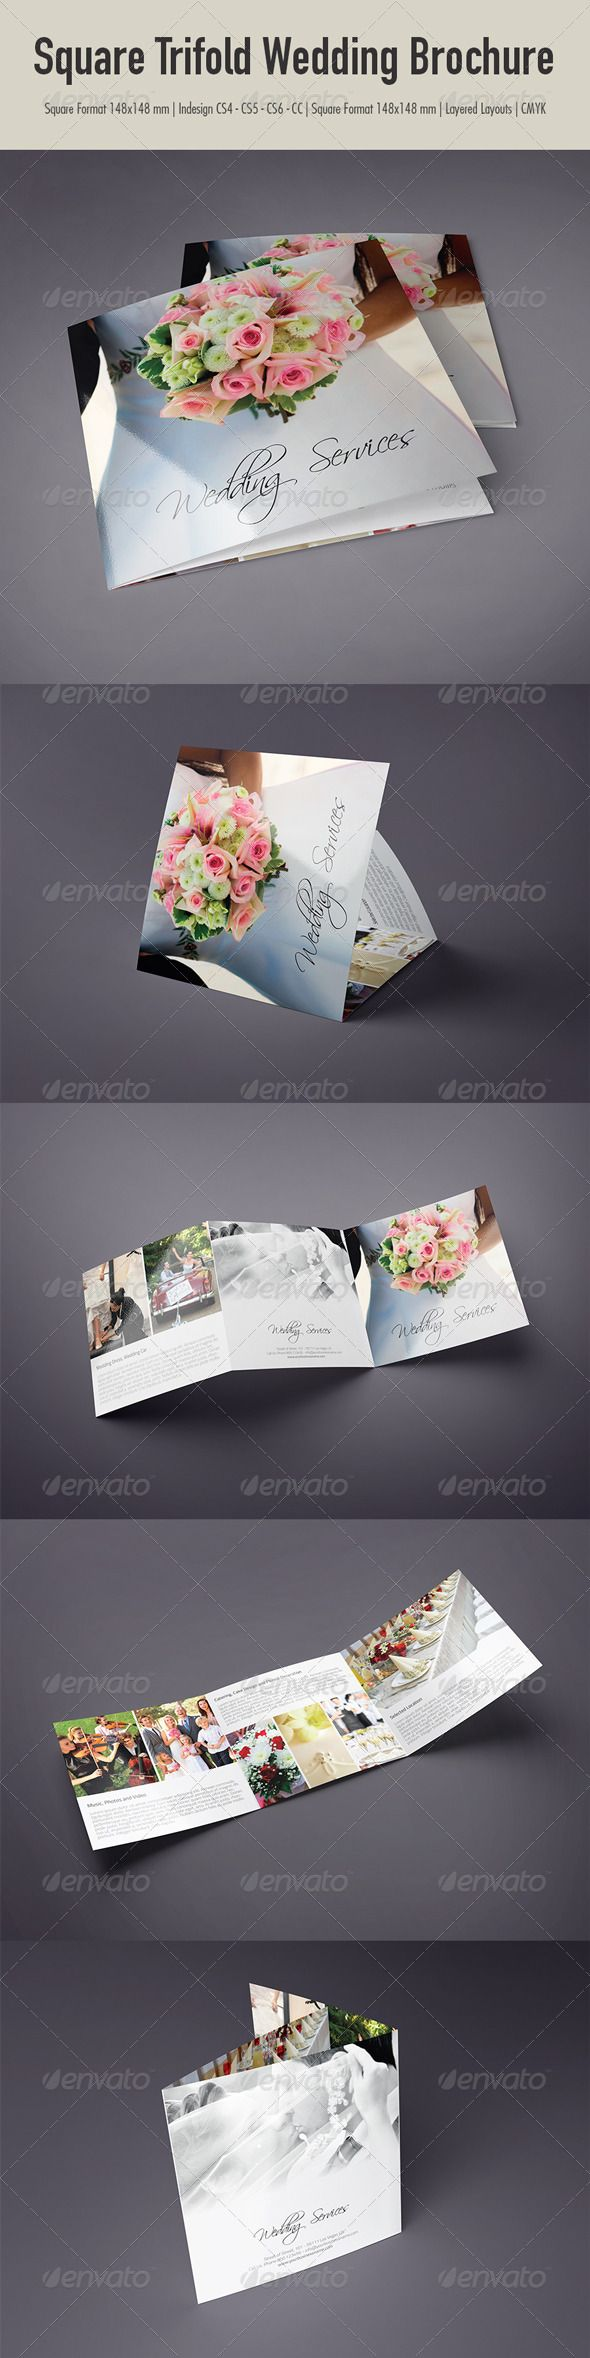 Square Trifold Wedding Brochure | Pinterest | Tríptico, Invitaciones ...